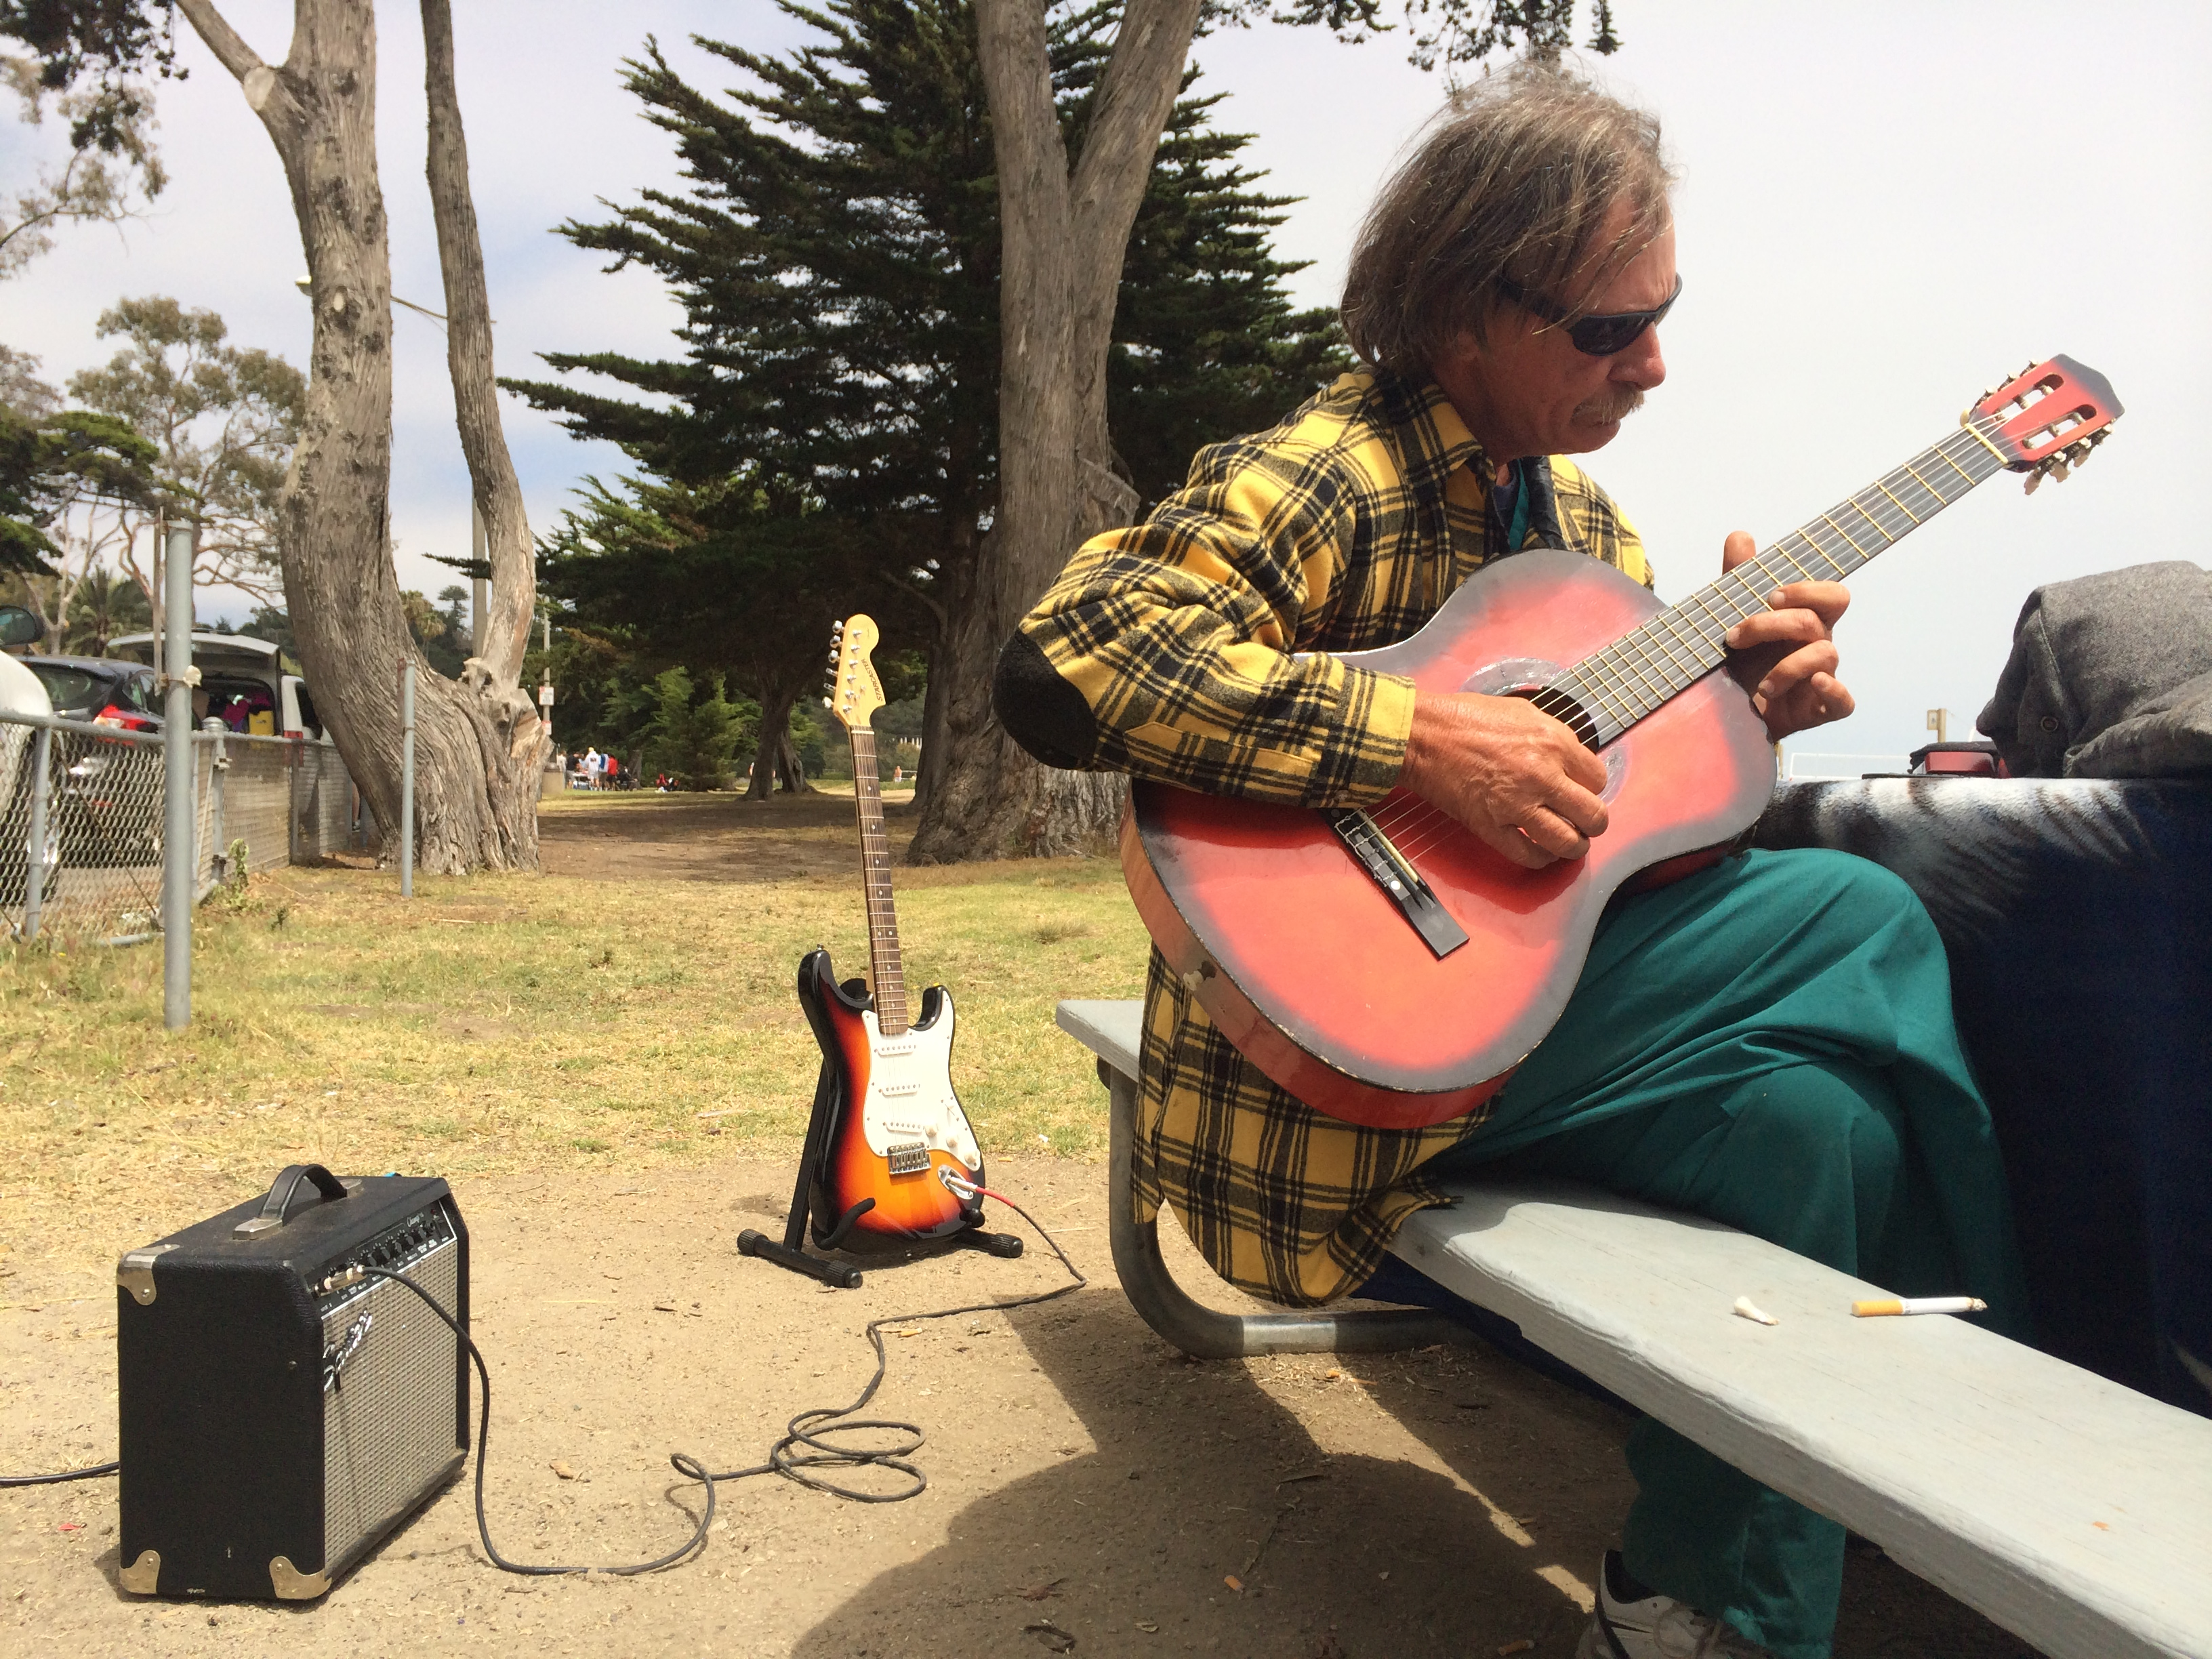 "Larry, with two old blues guitars, posted at East Beach, Santa Barbara. Different styles of blues in different guitars, each with their own attributes. ""I'm just an underground blues player, living out of my care and playing the blues for people that matter"" -Larry  -David Arnet"